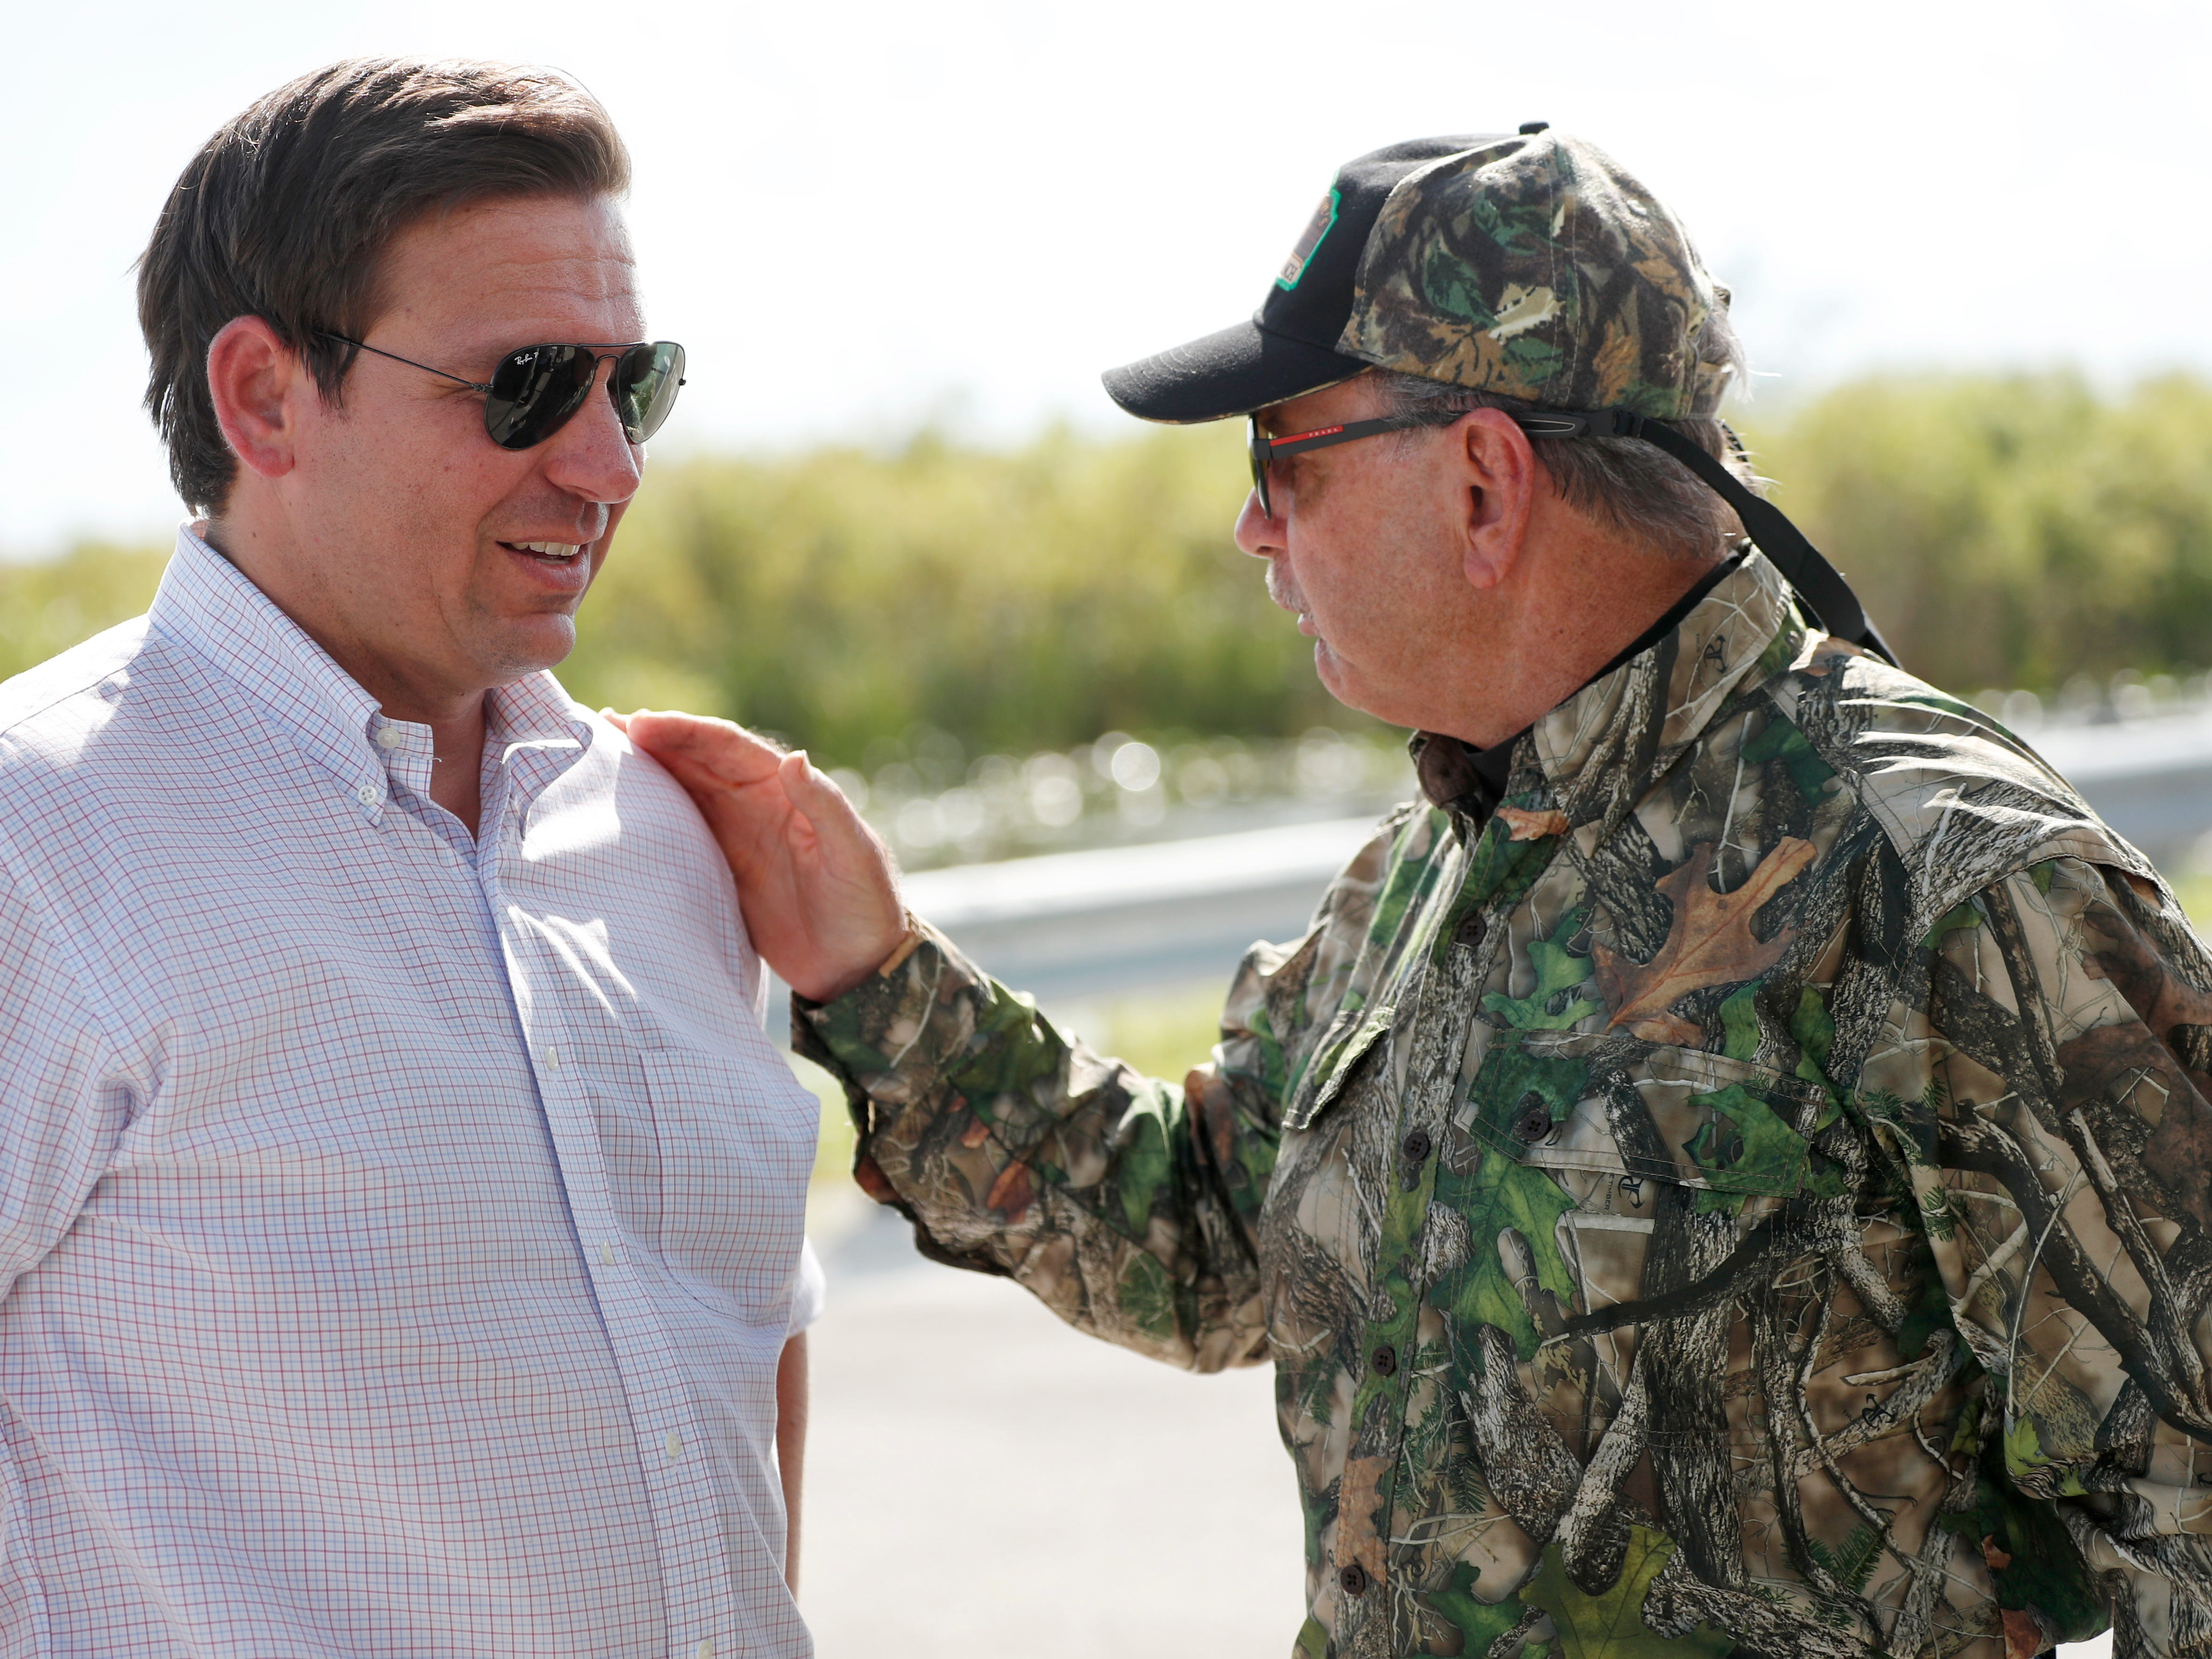 Republican candidate for Florida Governor Ron DeSantis, chats with Gladesman and former Florida Fish and Wildlife Conservation commissioner Ron Bergeron after an airboat tour of the Florida Everglades, Wednesday, Sept. 12, 2018, in Fort Lauderdale, Fla. (AP Photo/Wilfredo Lee)